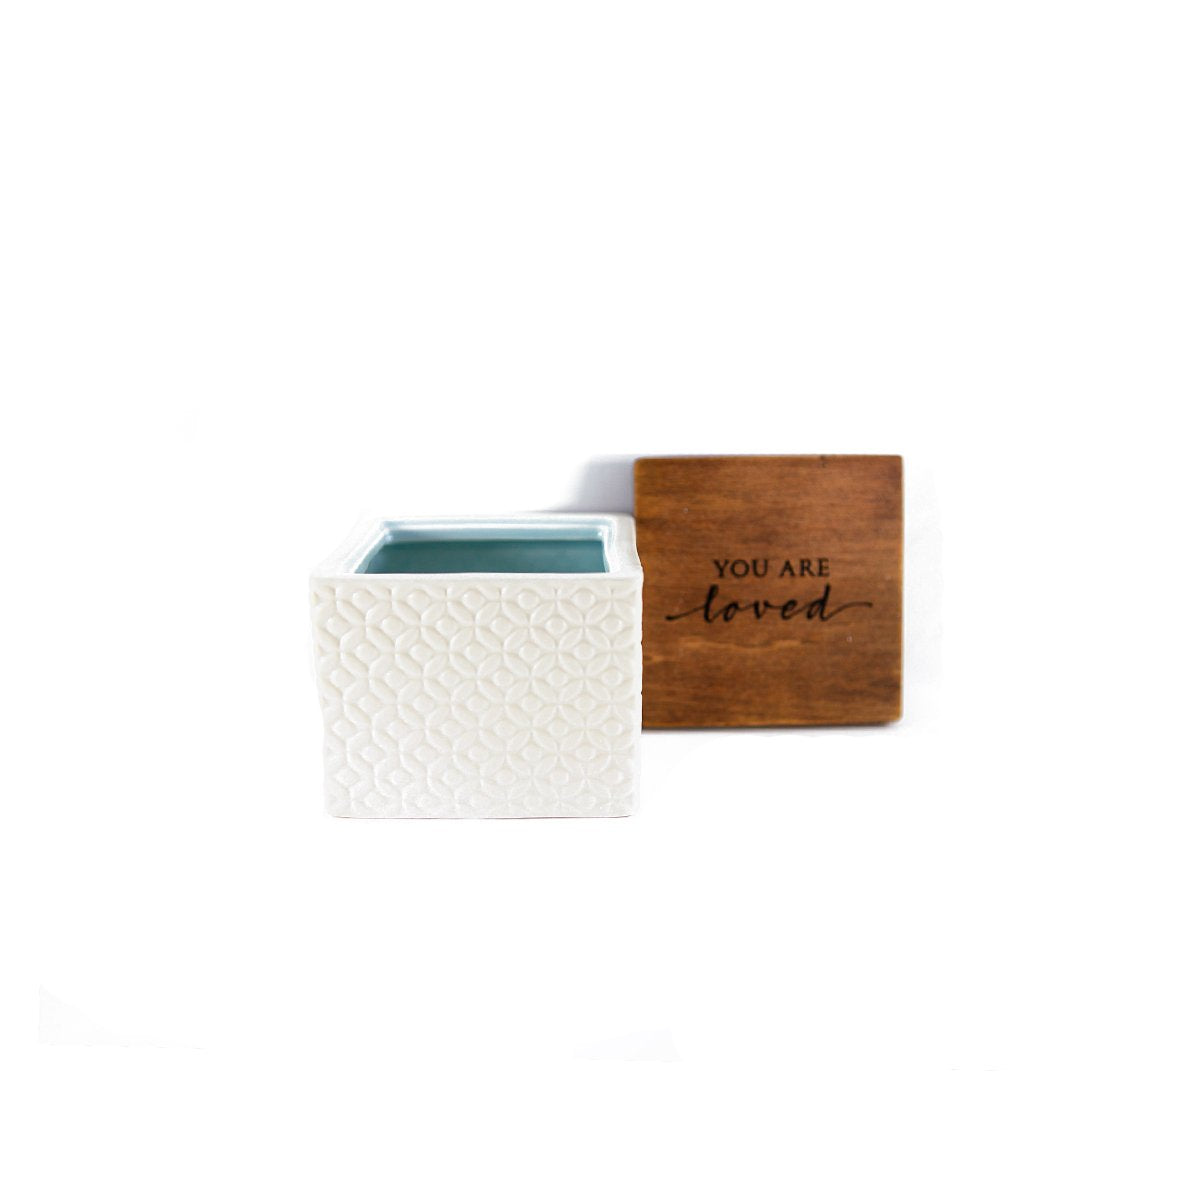 You Are Loved Ceramic Box with Wooden Lid